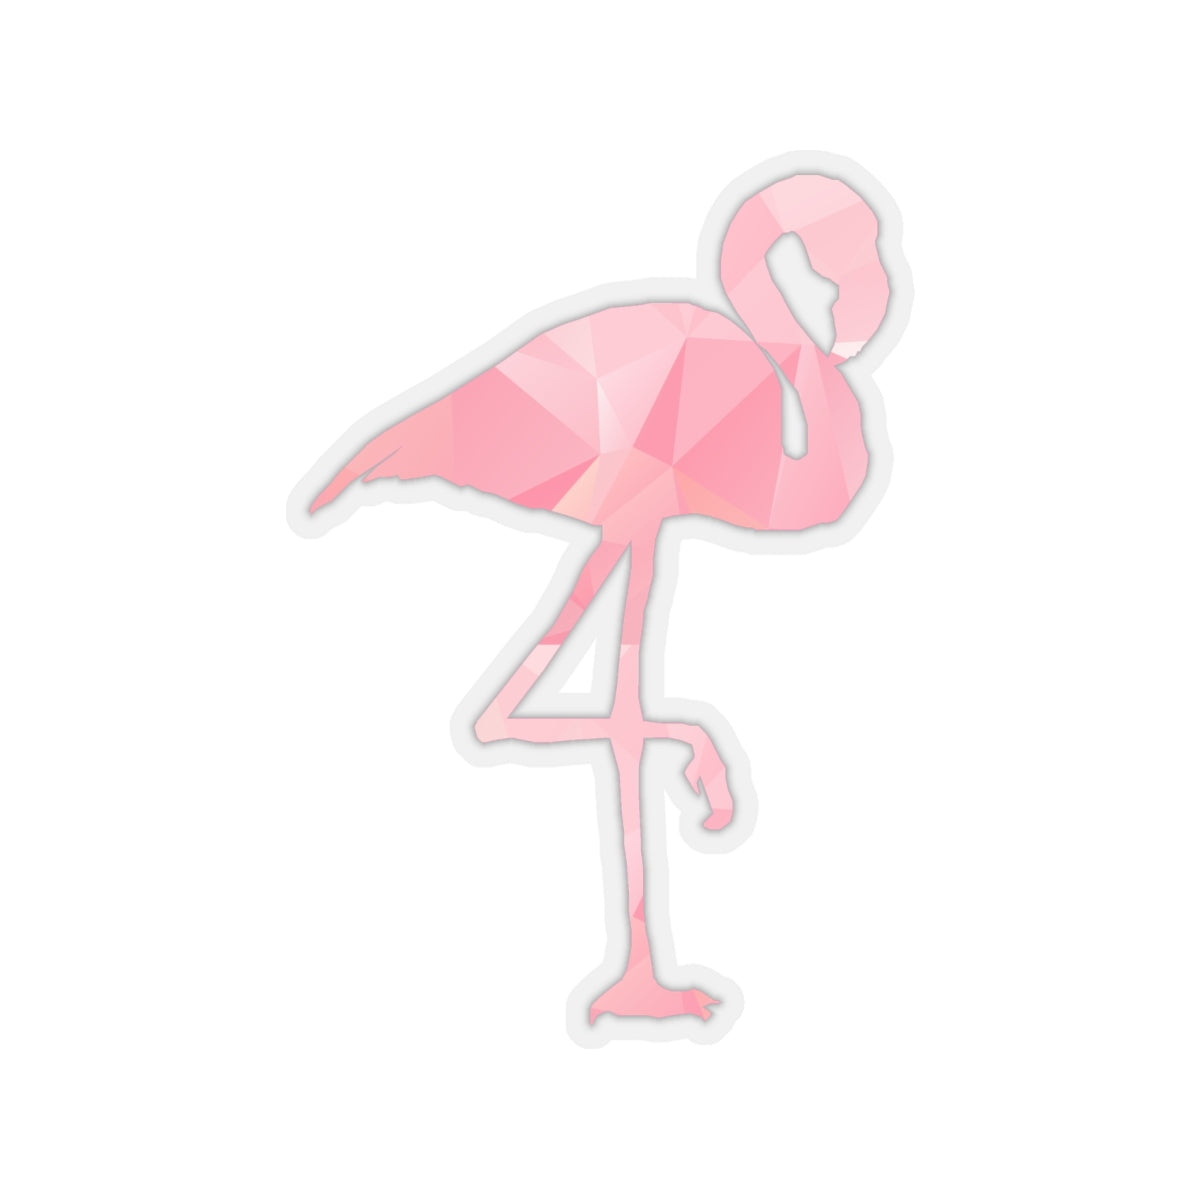 Flamingo Sticker, Flamingo Decal, Laptop Stickers, Water Bottle Stickers, Pink Flamingo Sticker, Planner Sticker, Pink Flamingo Vinyl Decal - jewelry-by-meesh